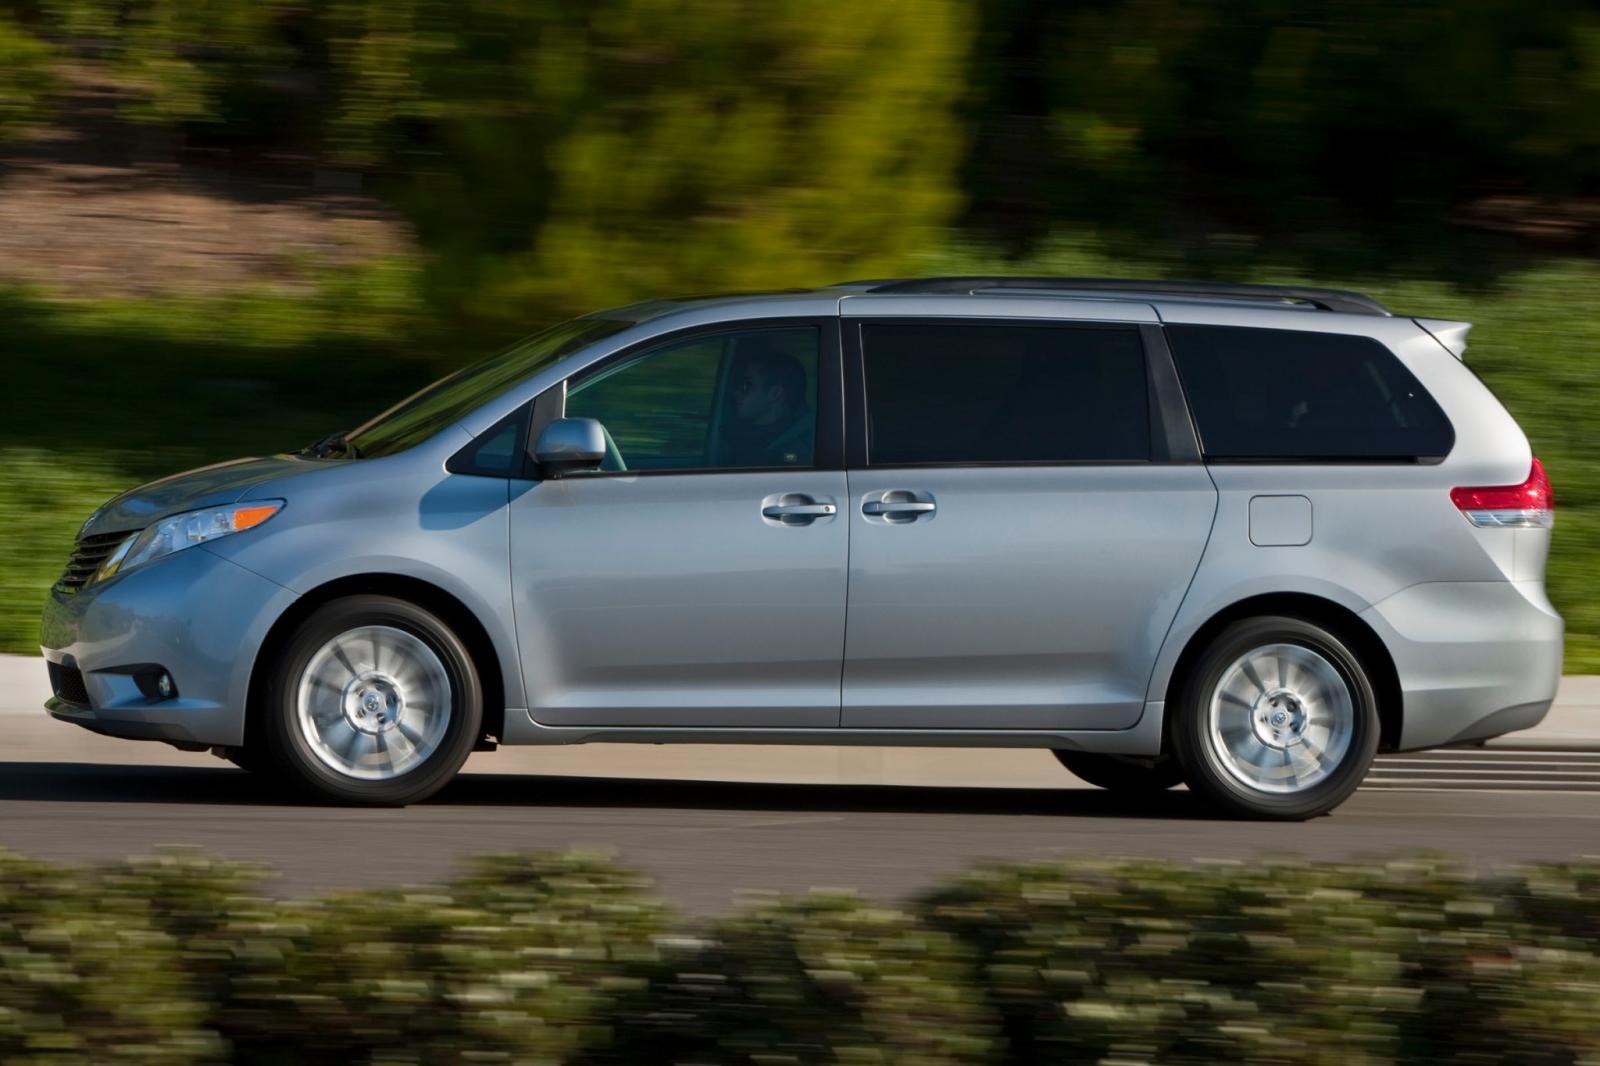 2014 toyota sienna information and photos zombiedrive. Black Bedroom Furniture Sets. Home Design Ideas